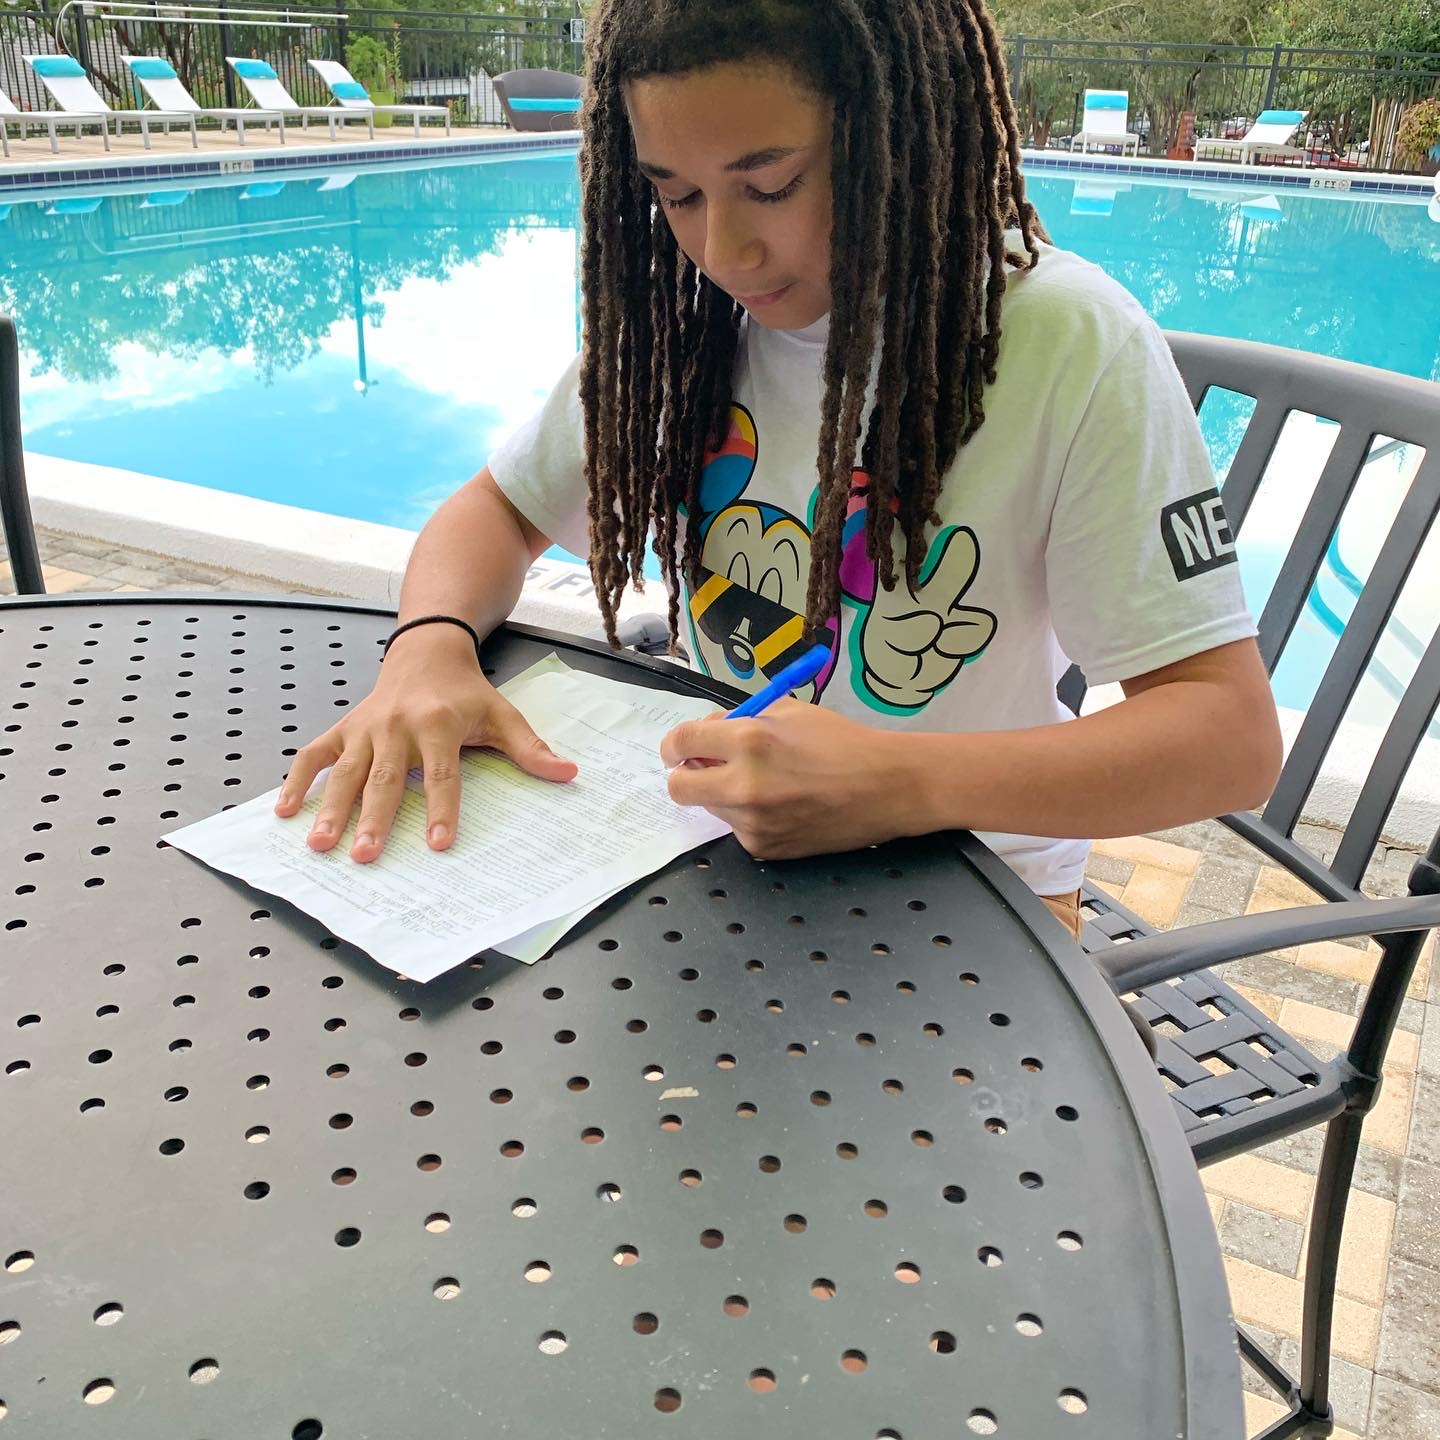 Juel Miller signing an agency contract